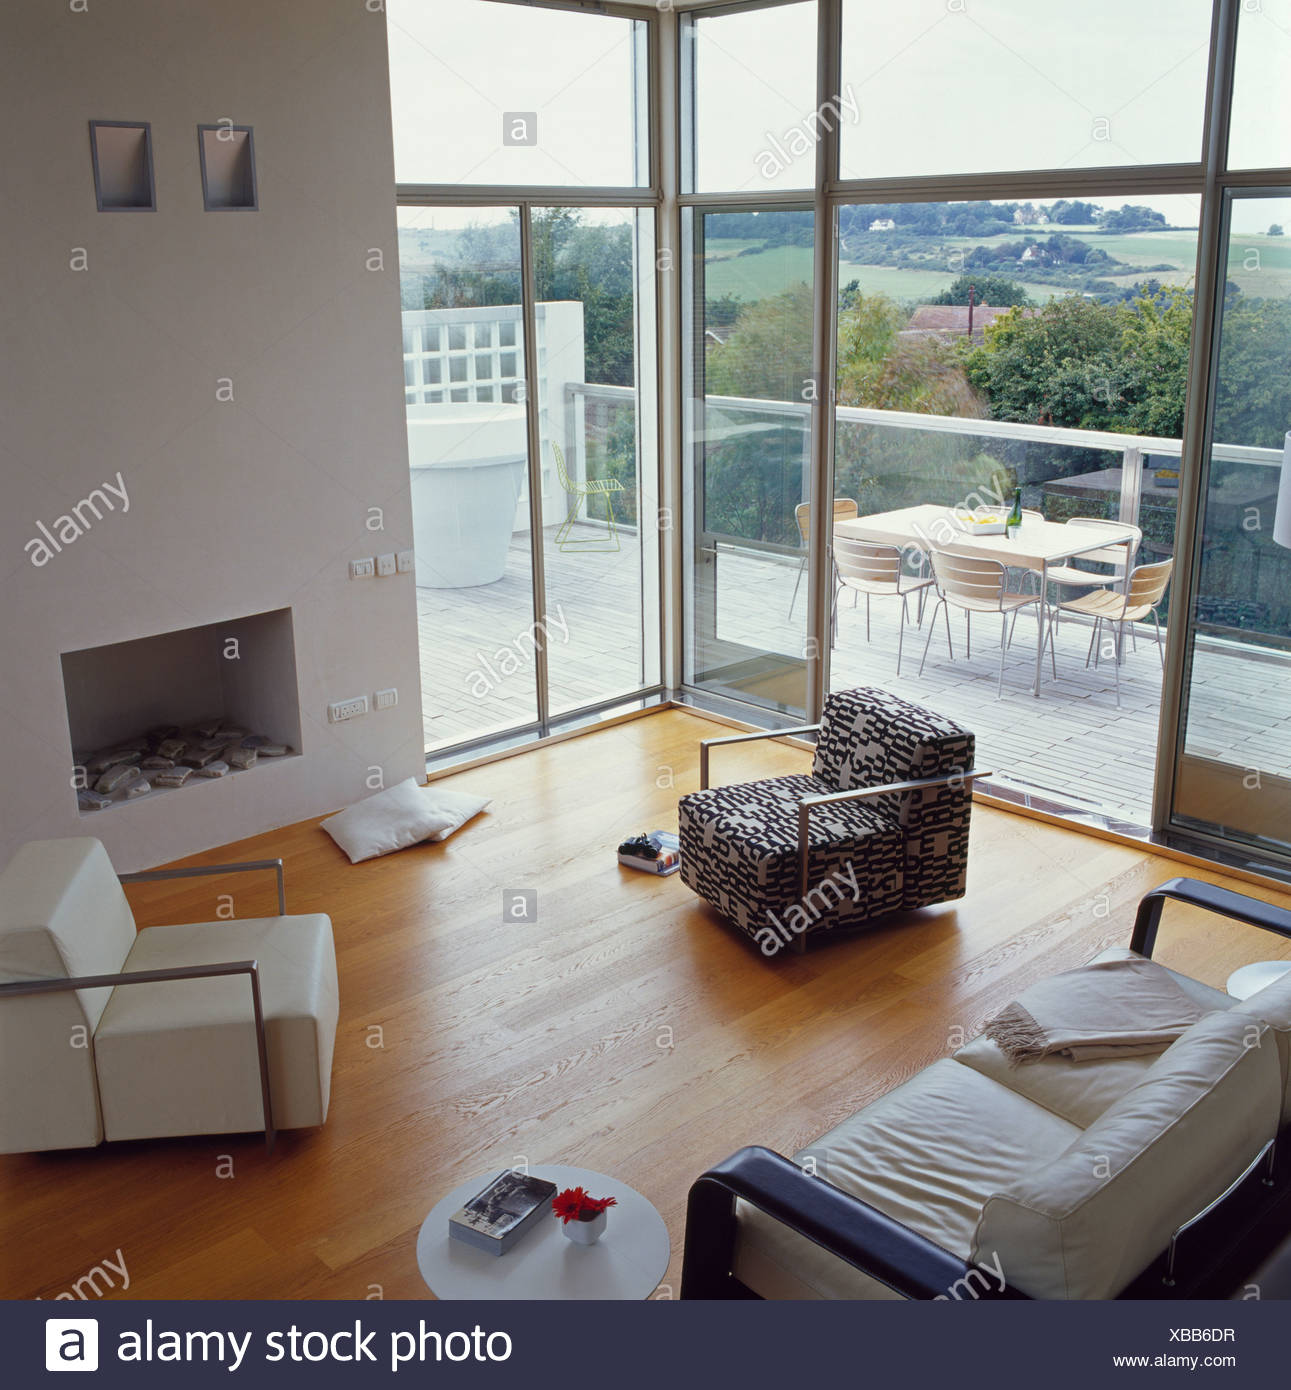 Living Room With Fireplace And Sliding Doors: Large Modern Living Room With Glass Doors And Floor-to